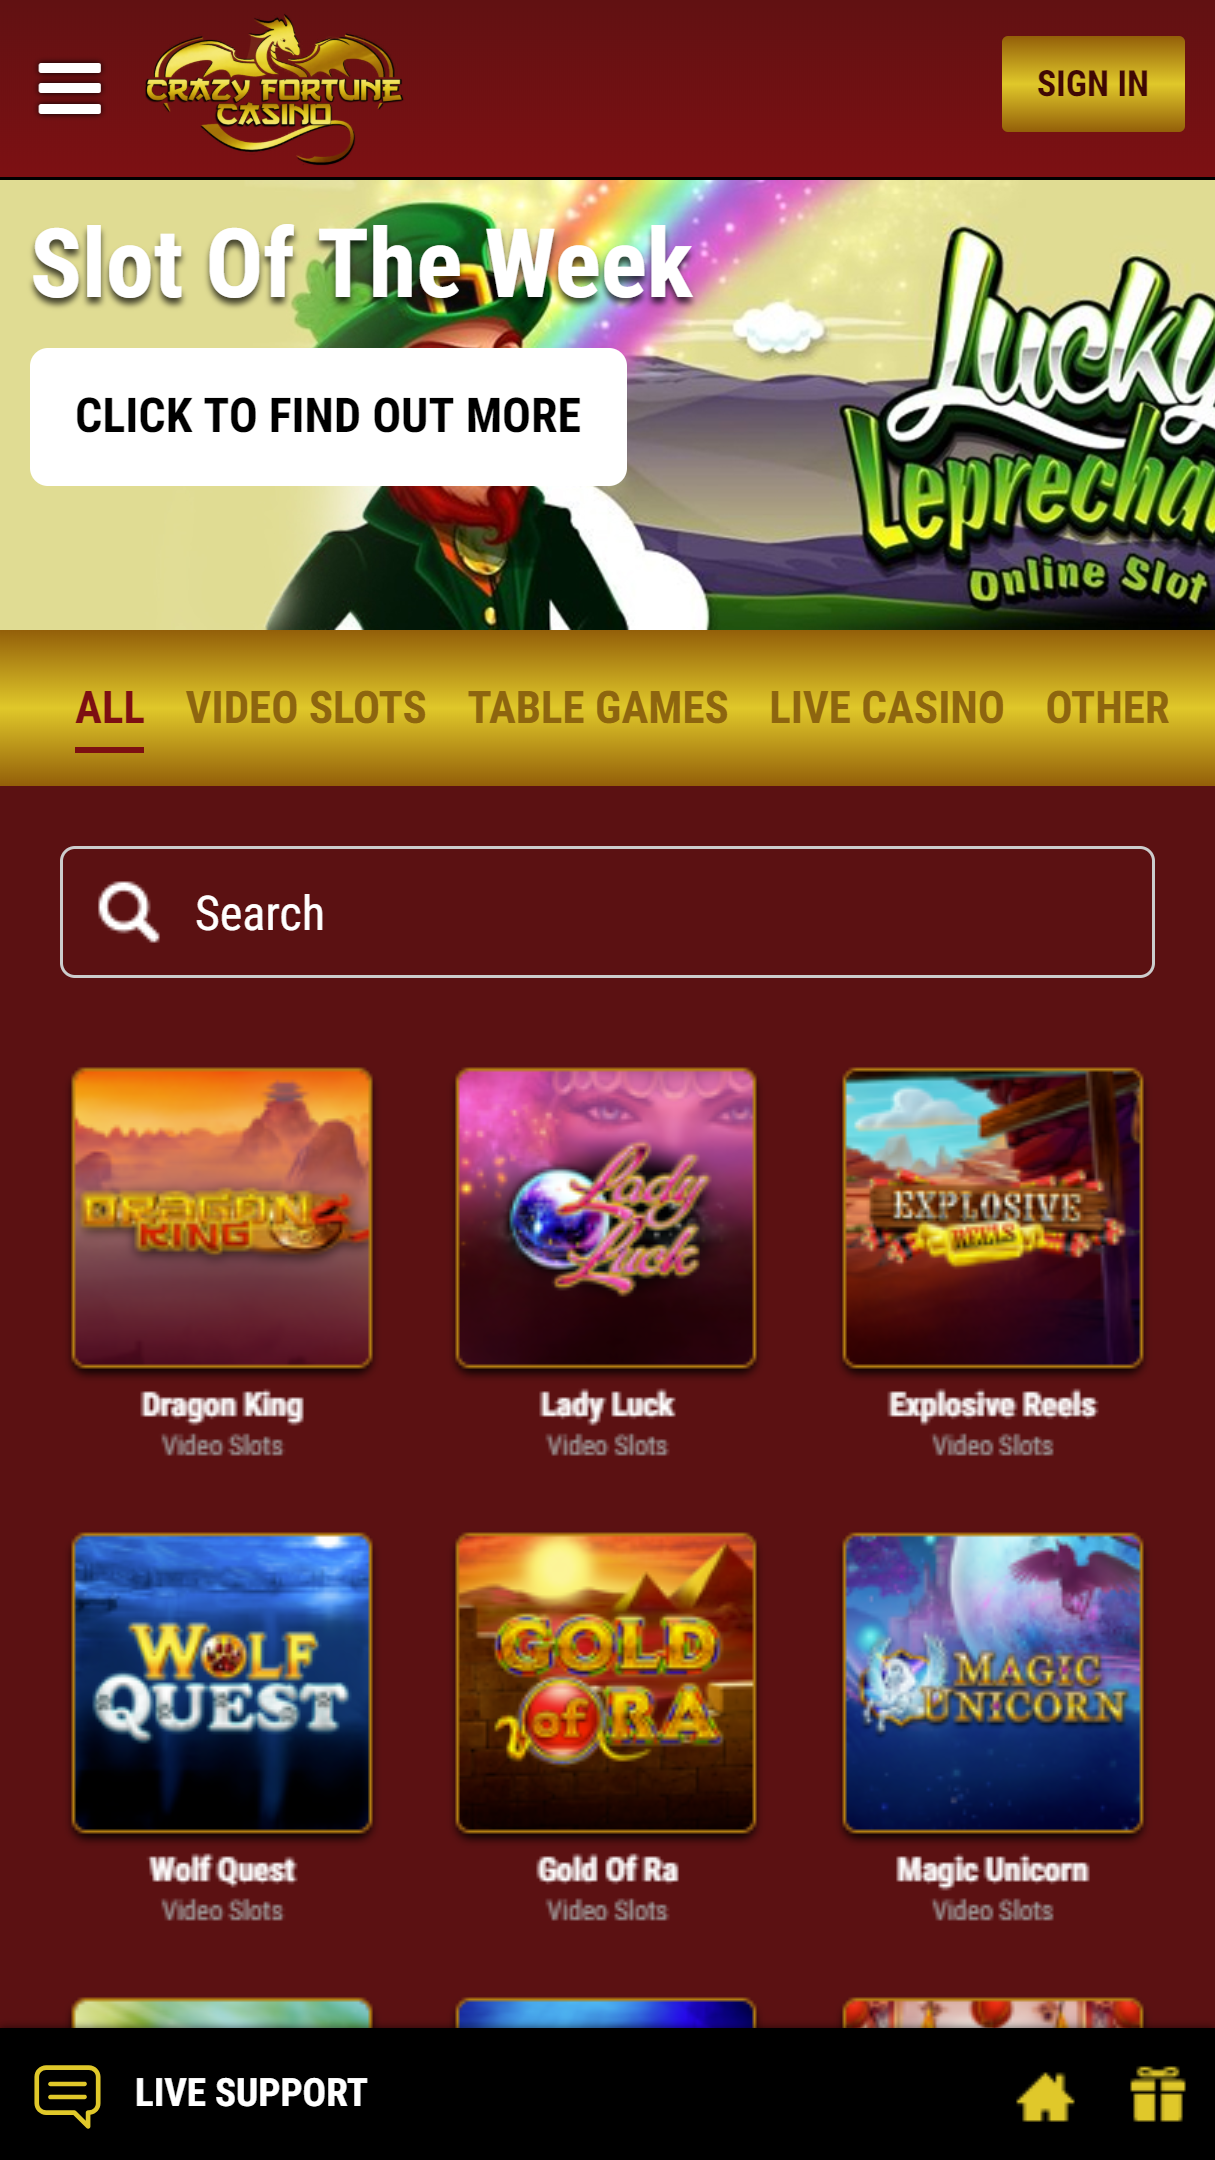 Crazy Fortune Casino App Homepage